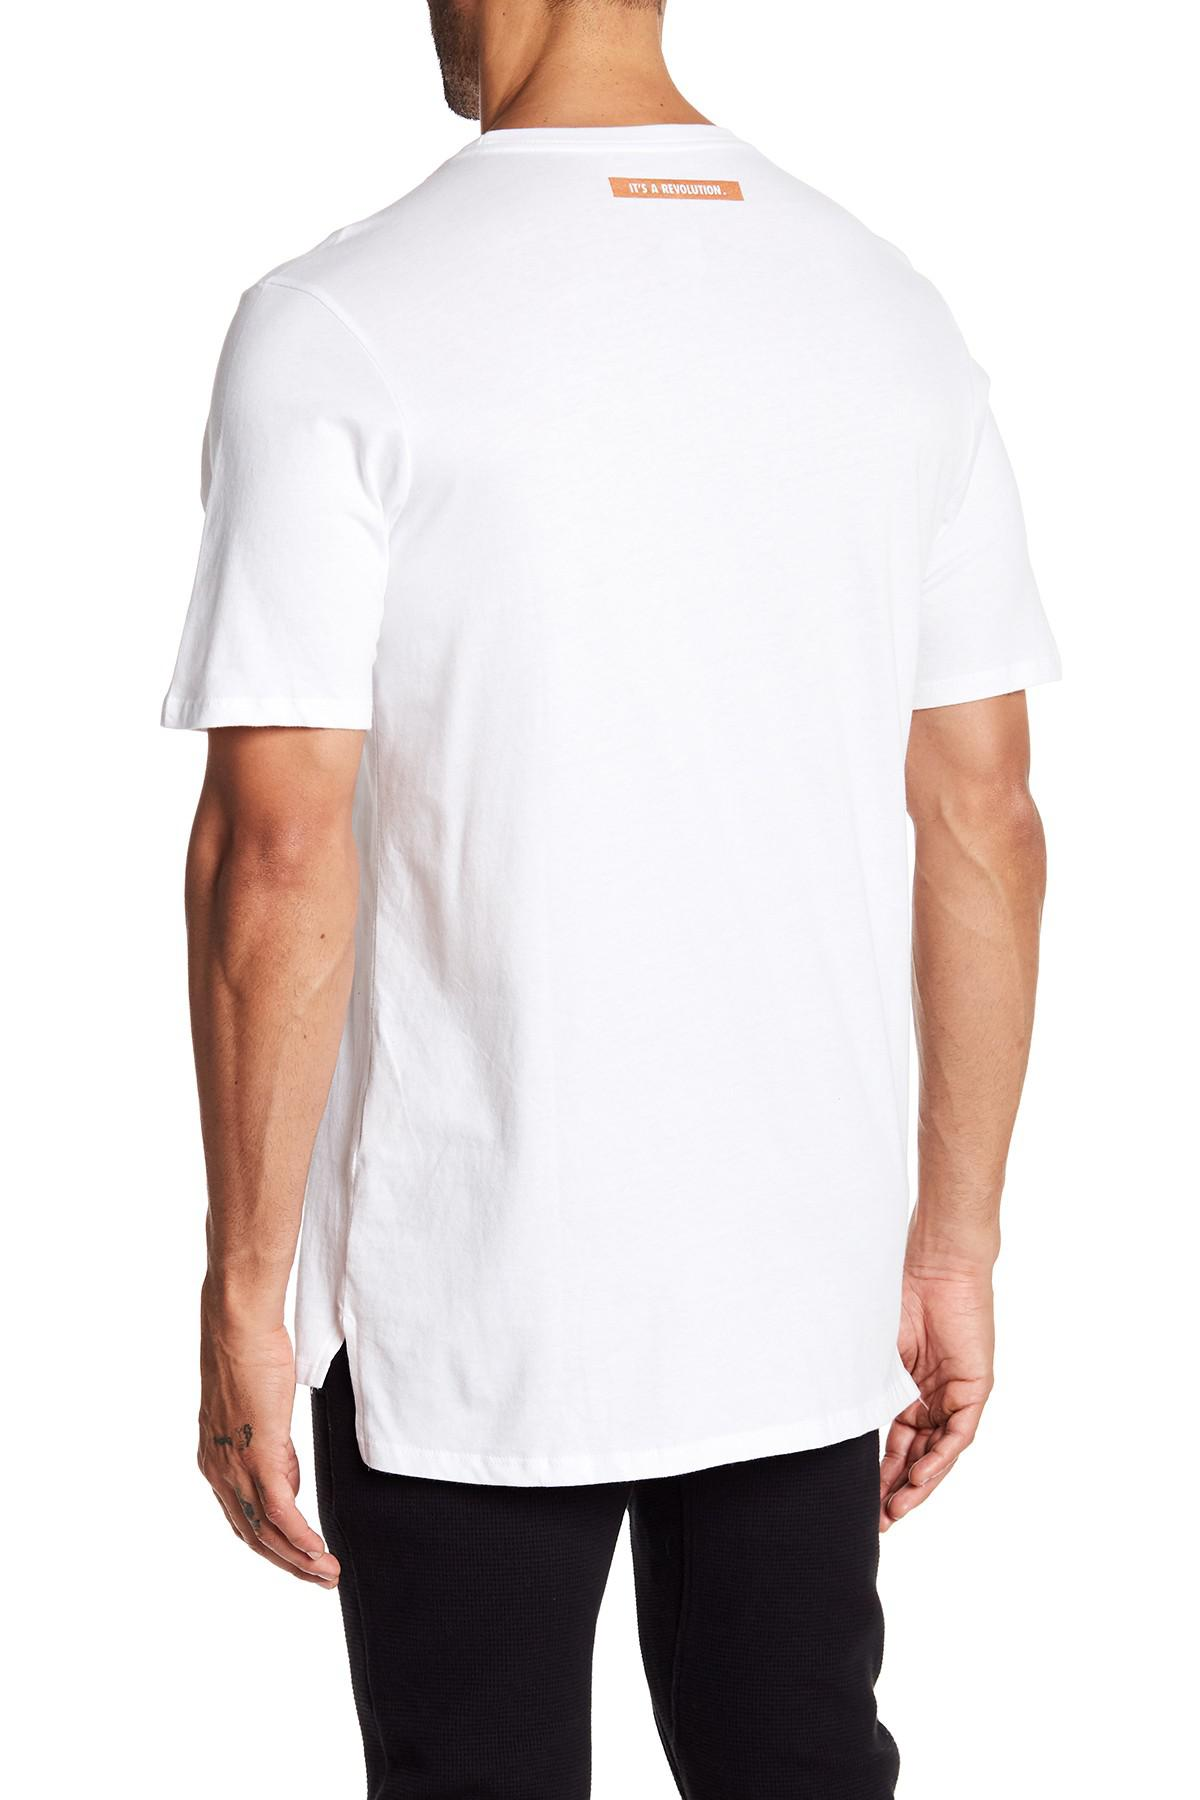 In Tee Heritage Lyst Virus For Men Air Nike White UBvqgg